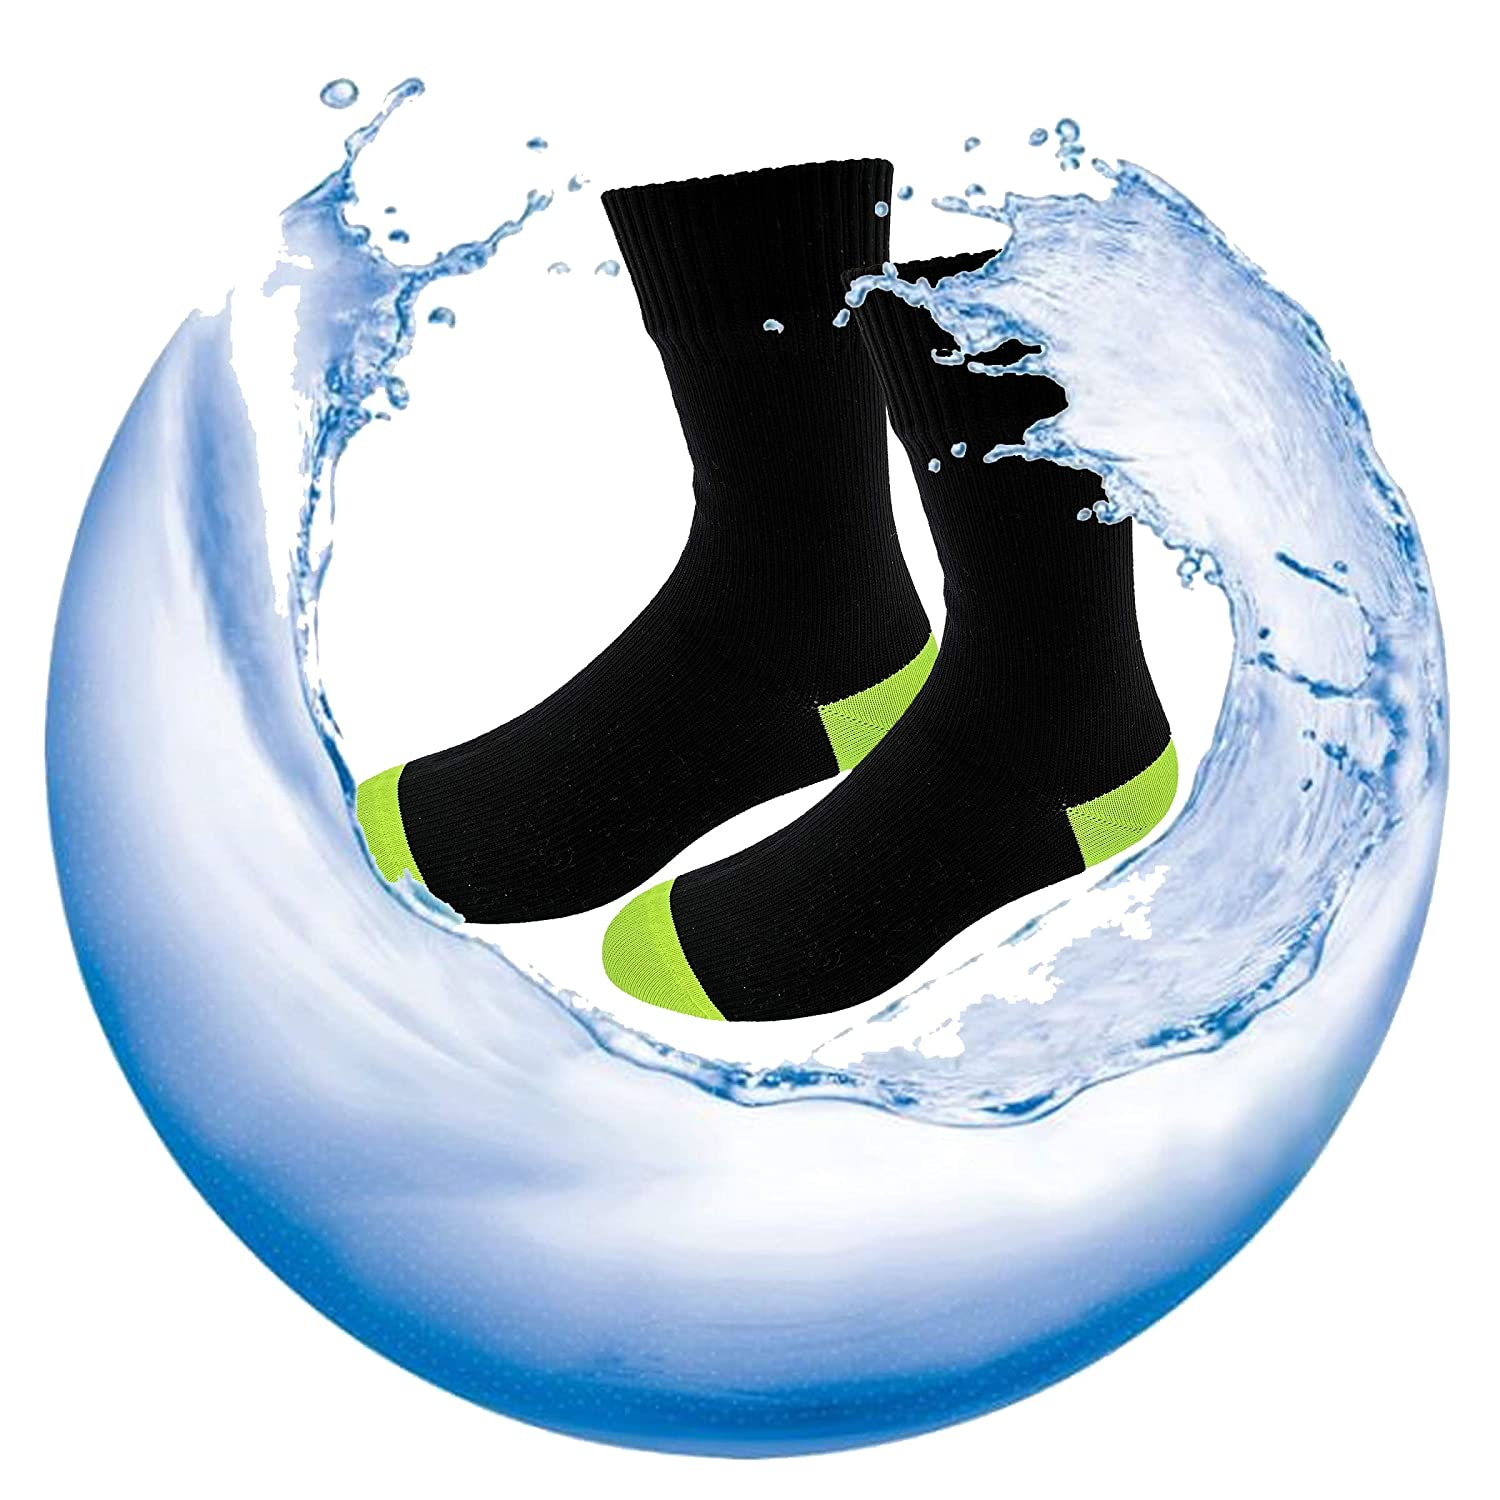 HIGHCAMP SGS Certified Best Valued Waterproof Socks for Men /& Women- Coolmax//Copper Cushion Crew Cycling, Running, Hiking Boots Socks